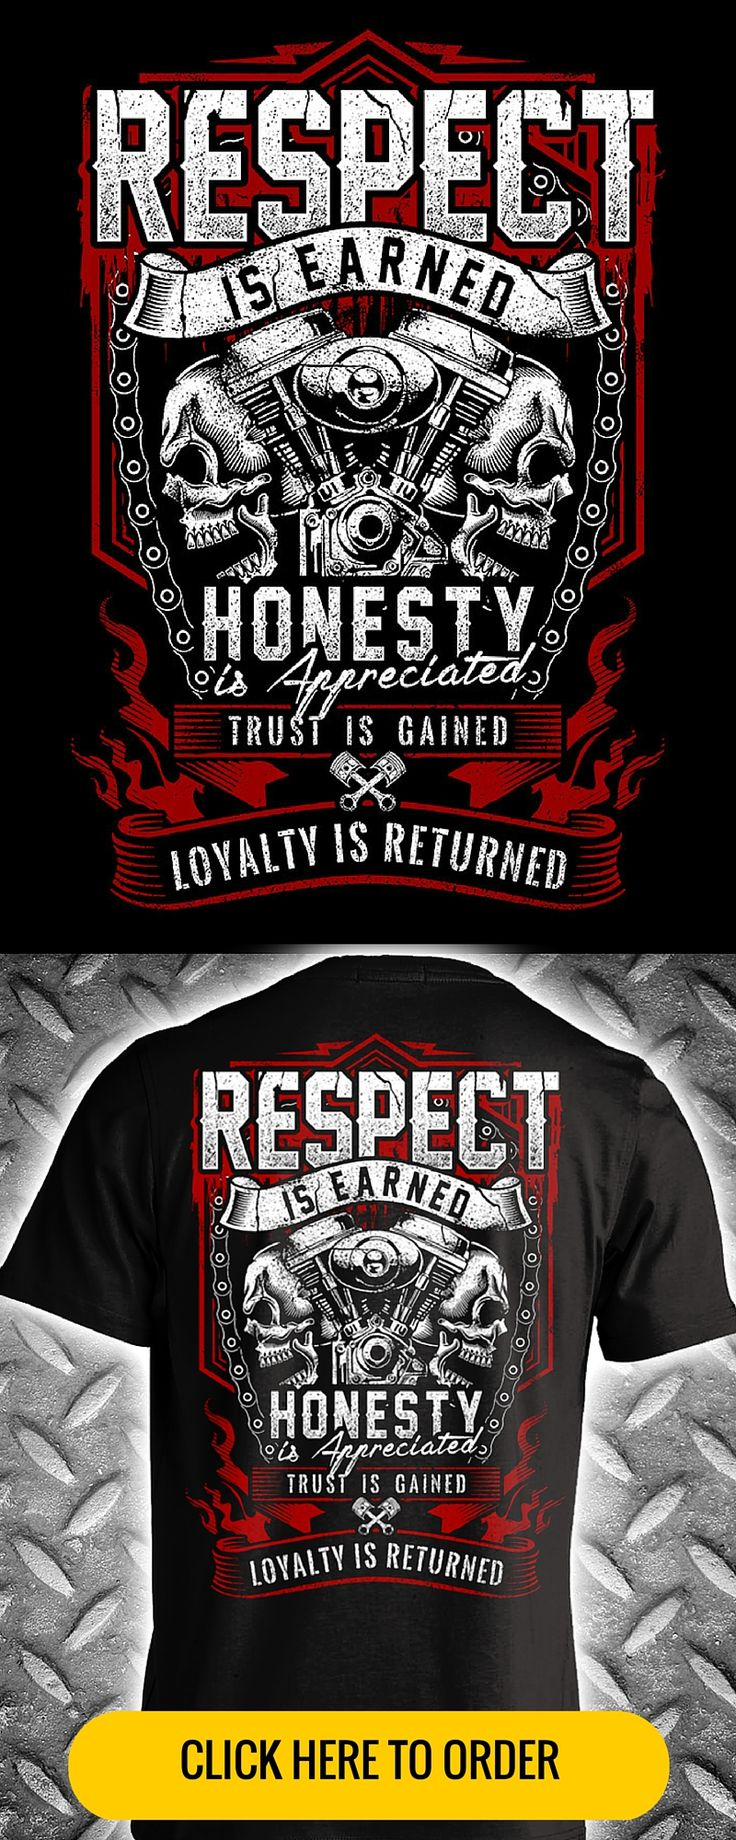 Respect is earned, honesty is appreciated, trust is gained, loyalty is returned... Men's Biker T-shirt. ORDER HERE: http://skullsociety.com/products/respect-is-earned-skull-engine?variant=5789809029&utm_source=pinterest&utm_medium=pin_120815_139&utm_campaign=120815